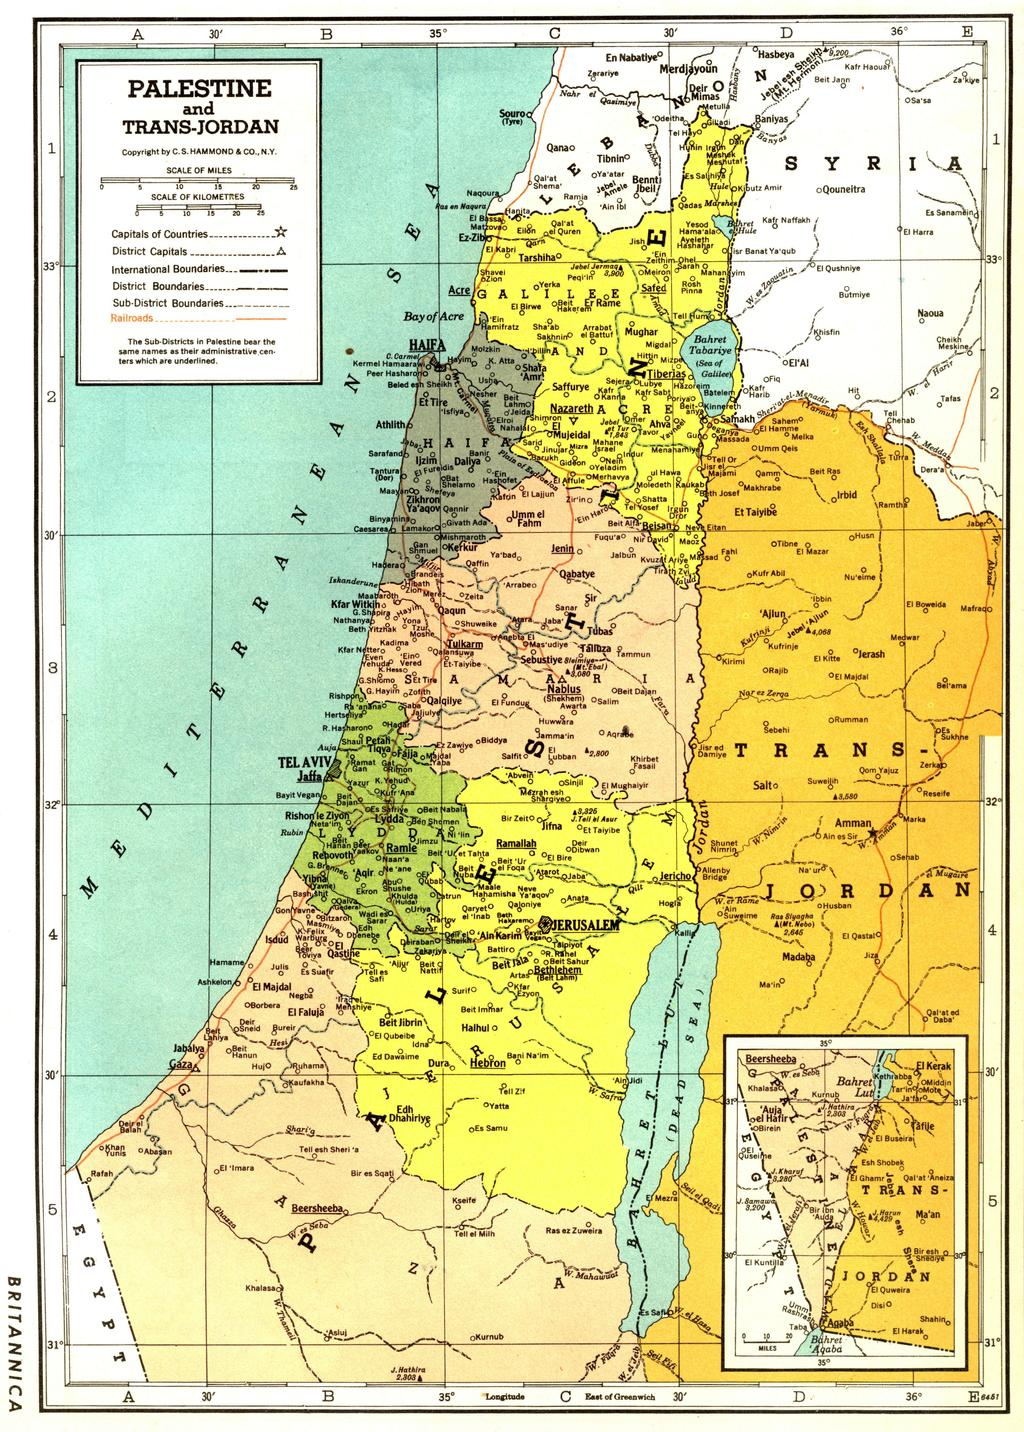 Map of Palestine c. 1922